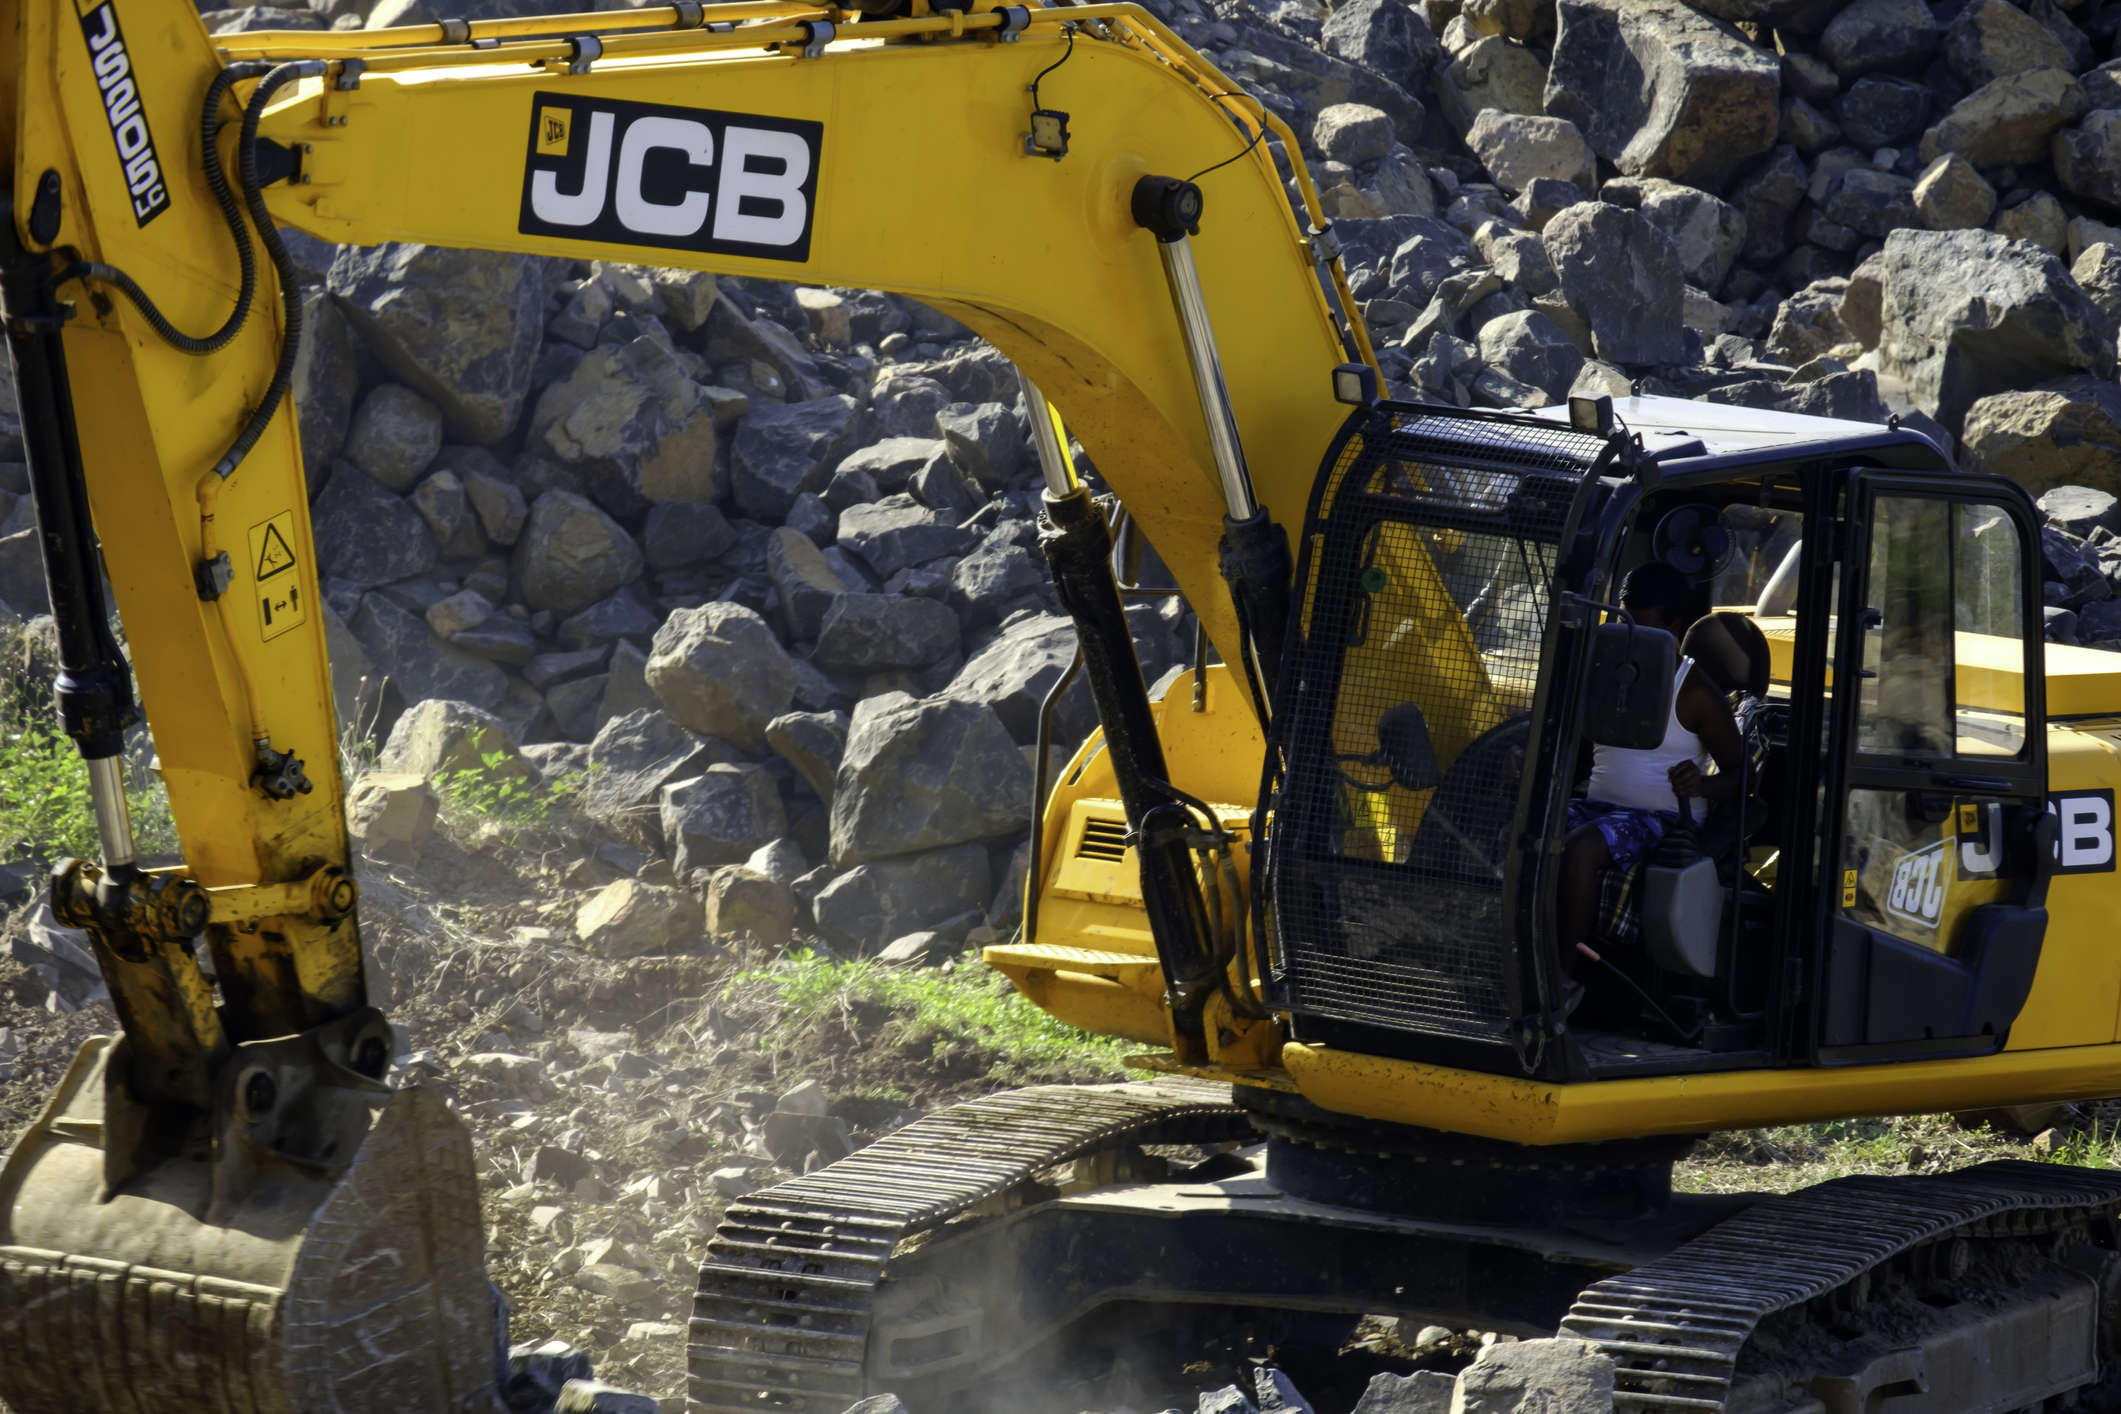 JCB India manufactures over 60 products in nine product categories, and also exports to over 110 countries.